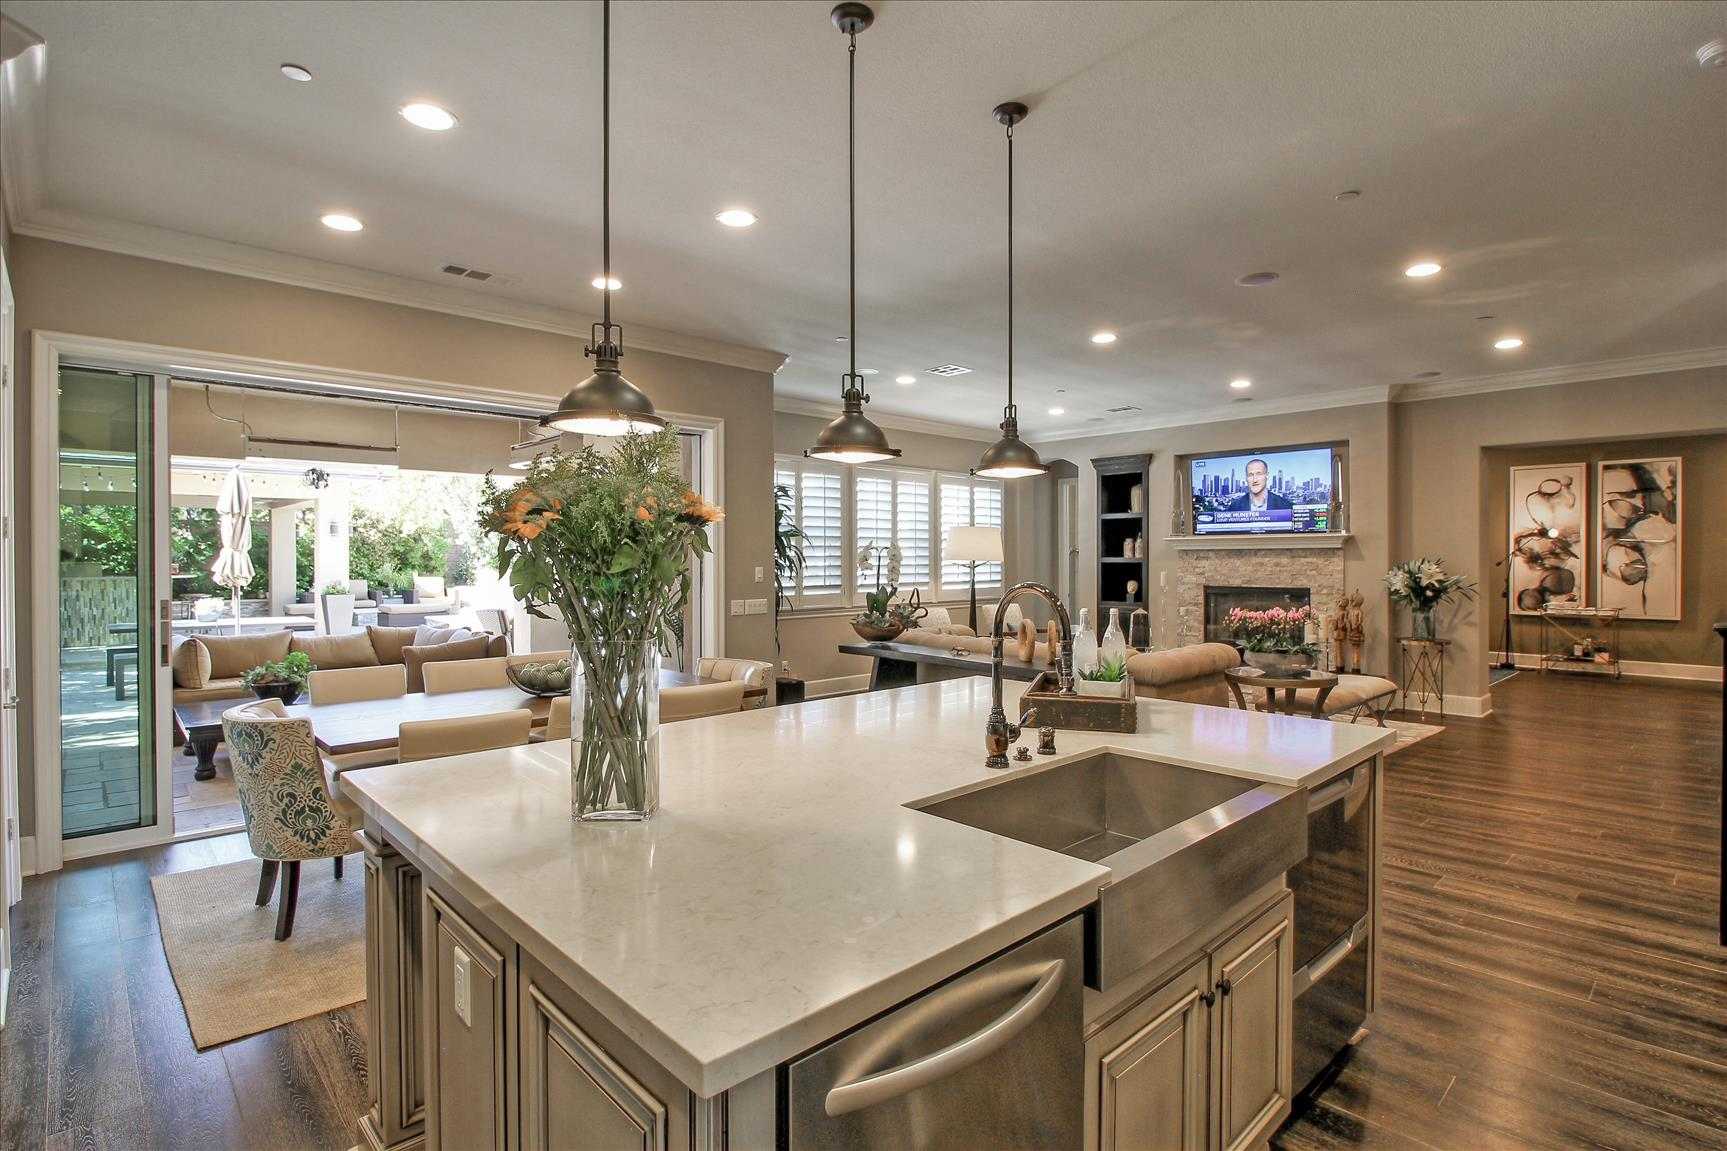 17471 Kennebunk Ln, Huntington Beach, CA  9264922.jpg